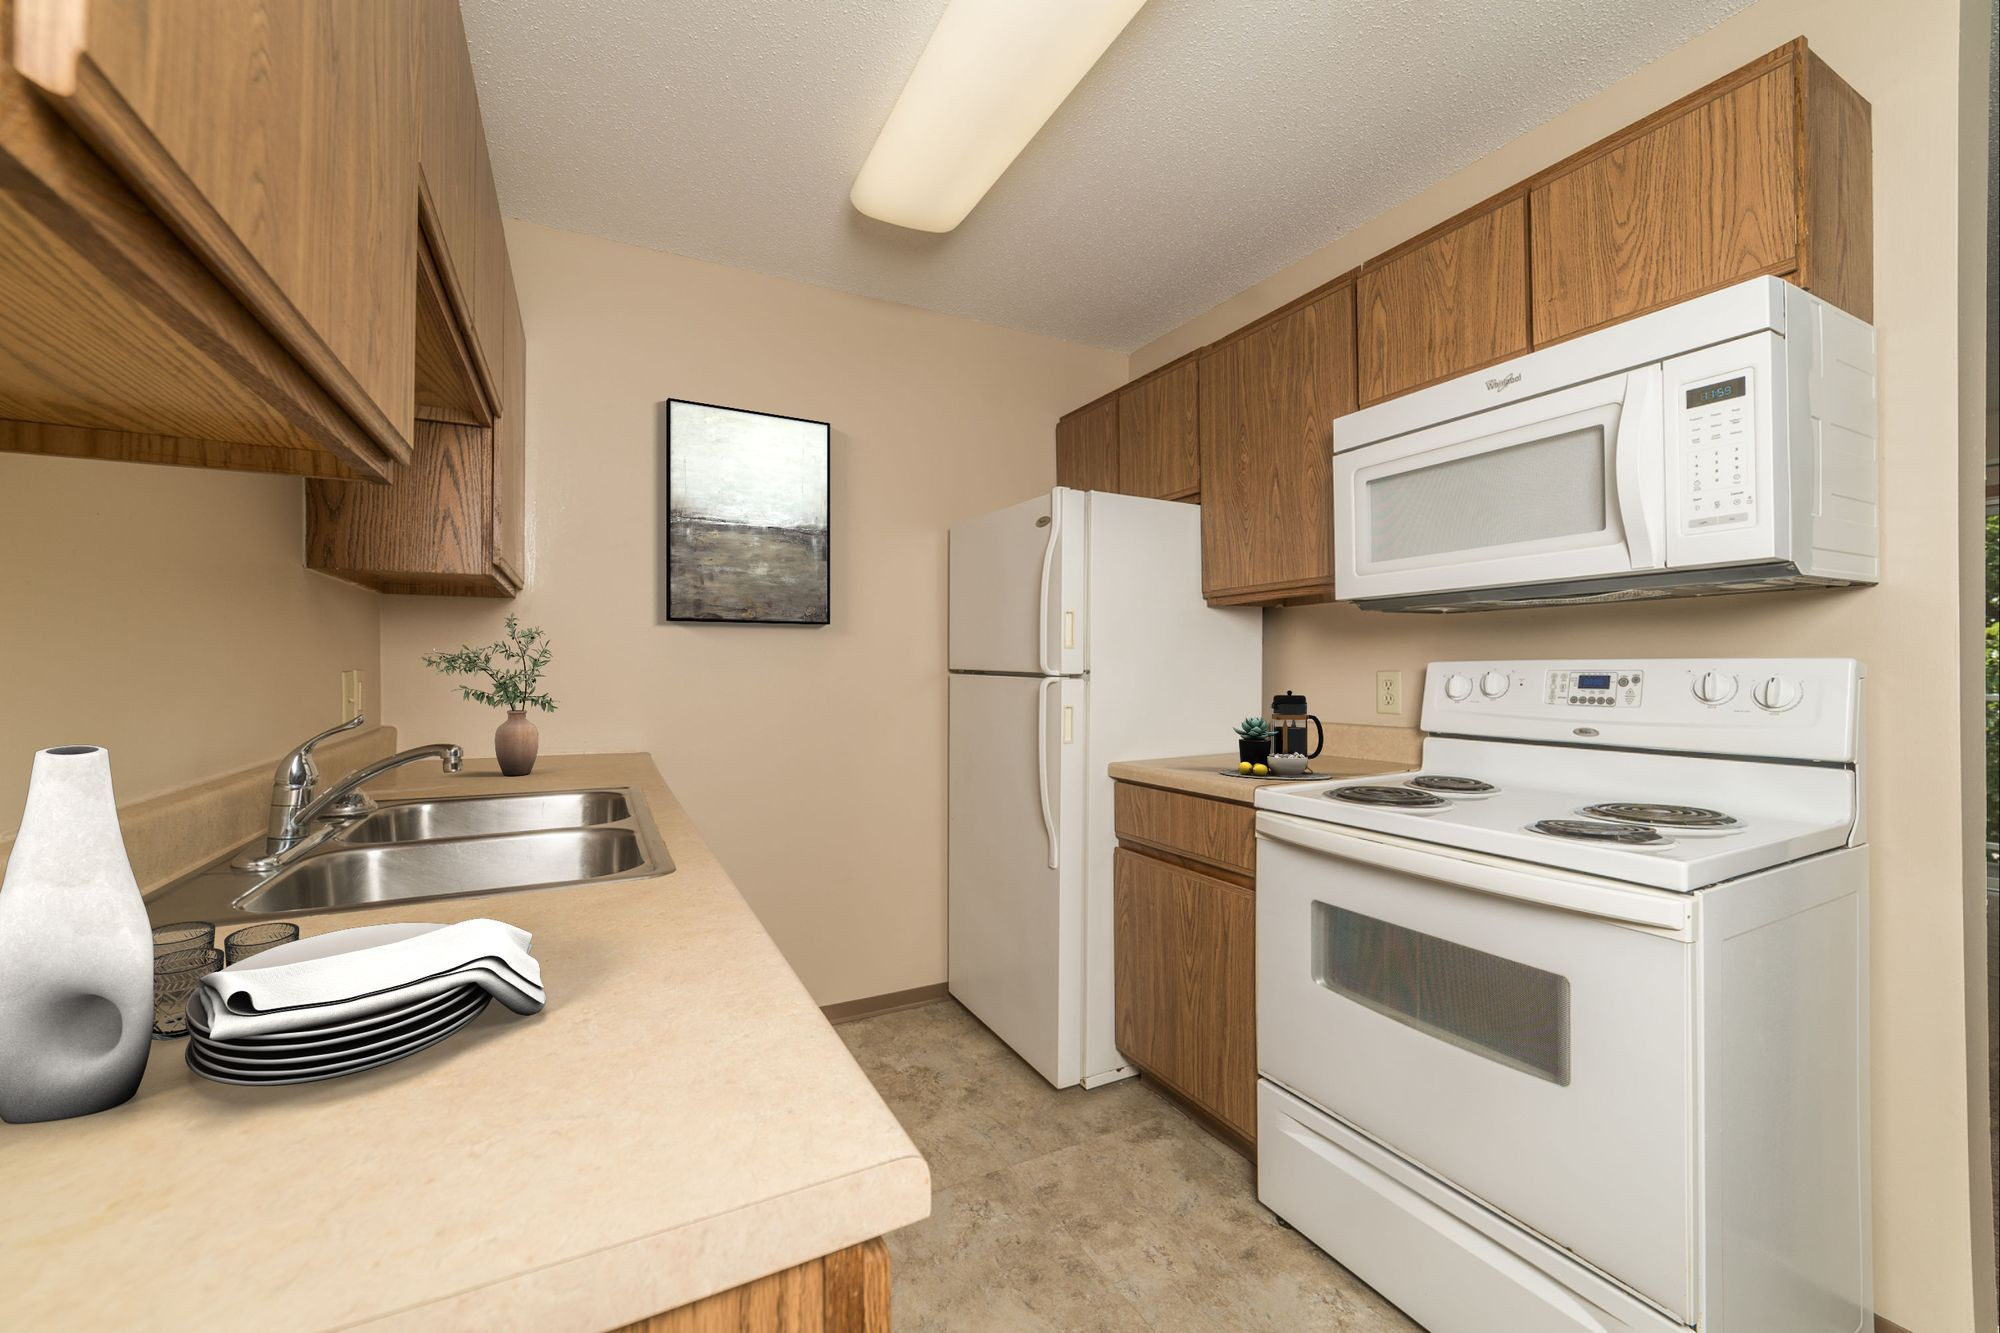 Apartments Near Augie Springbrook Estates for Augustana College Students in Sioux Falls, SD